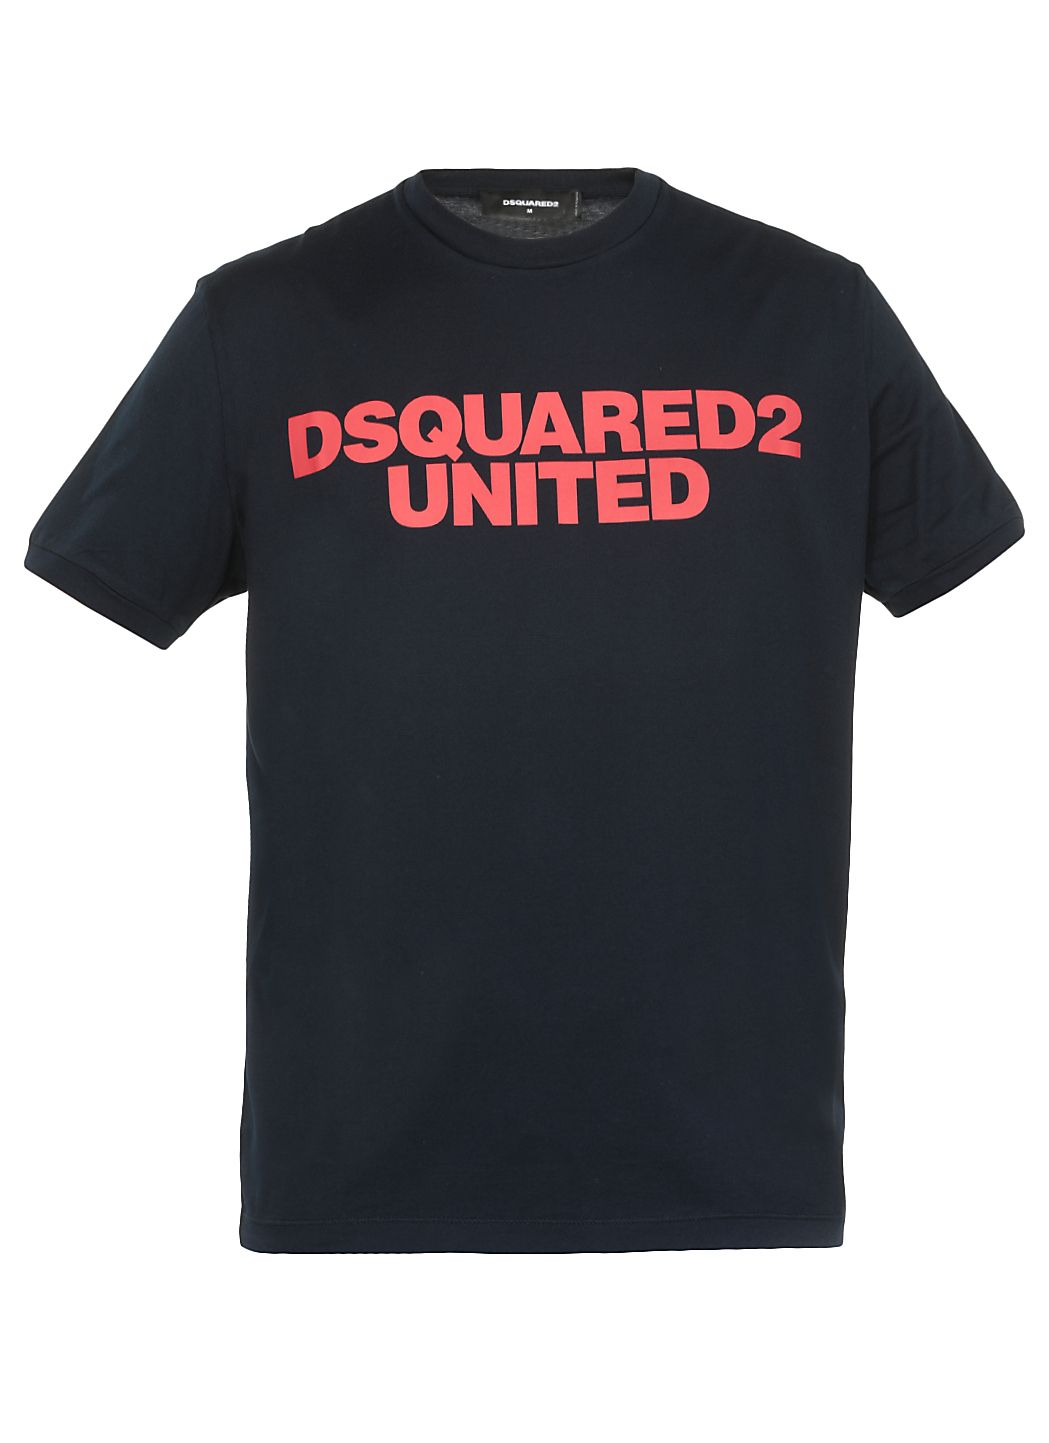 Dsquared2 United T-shirt